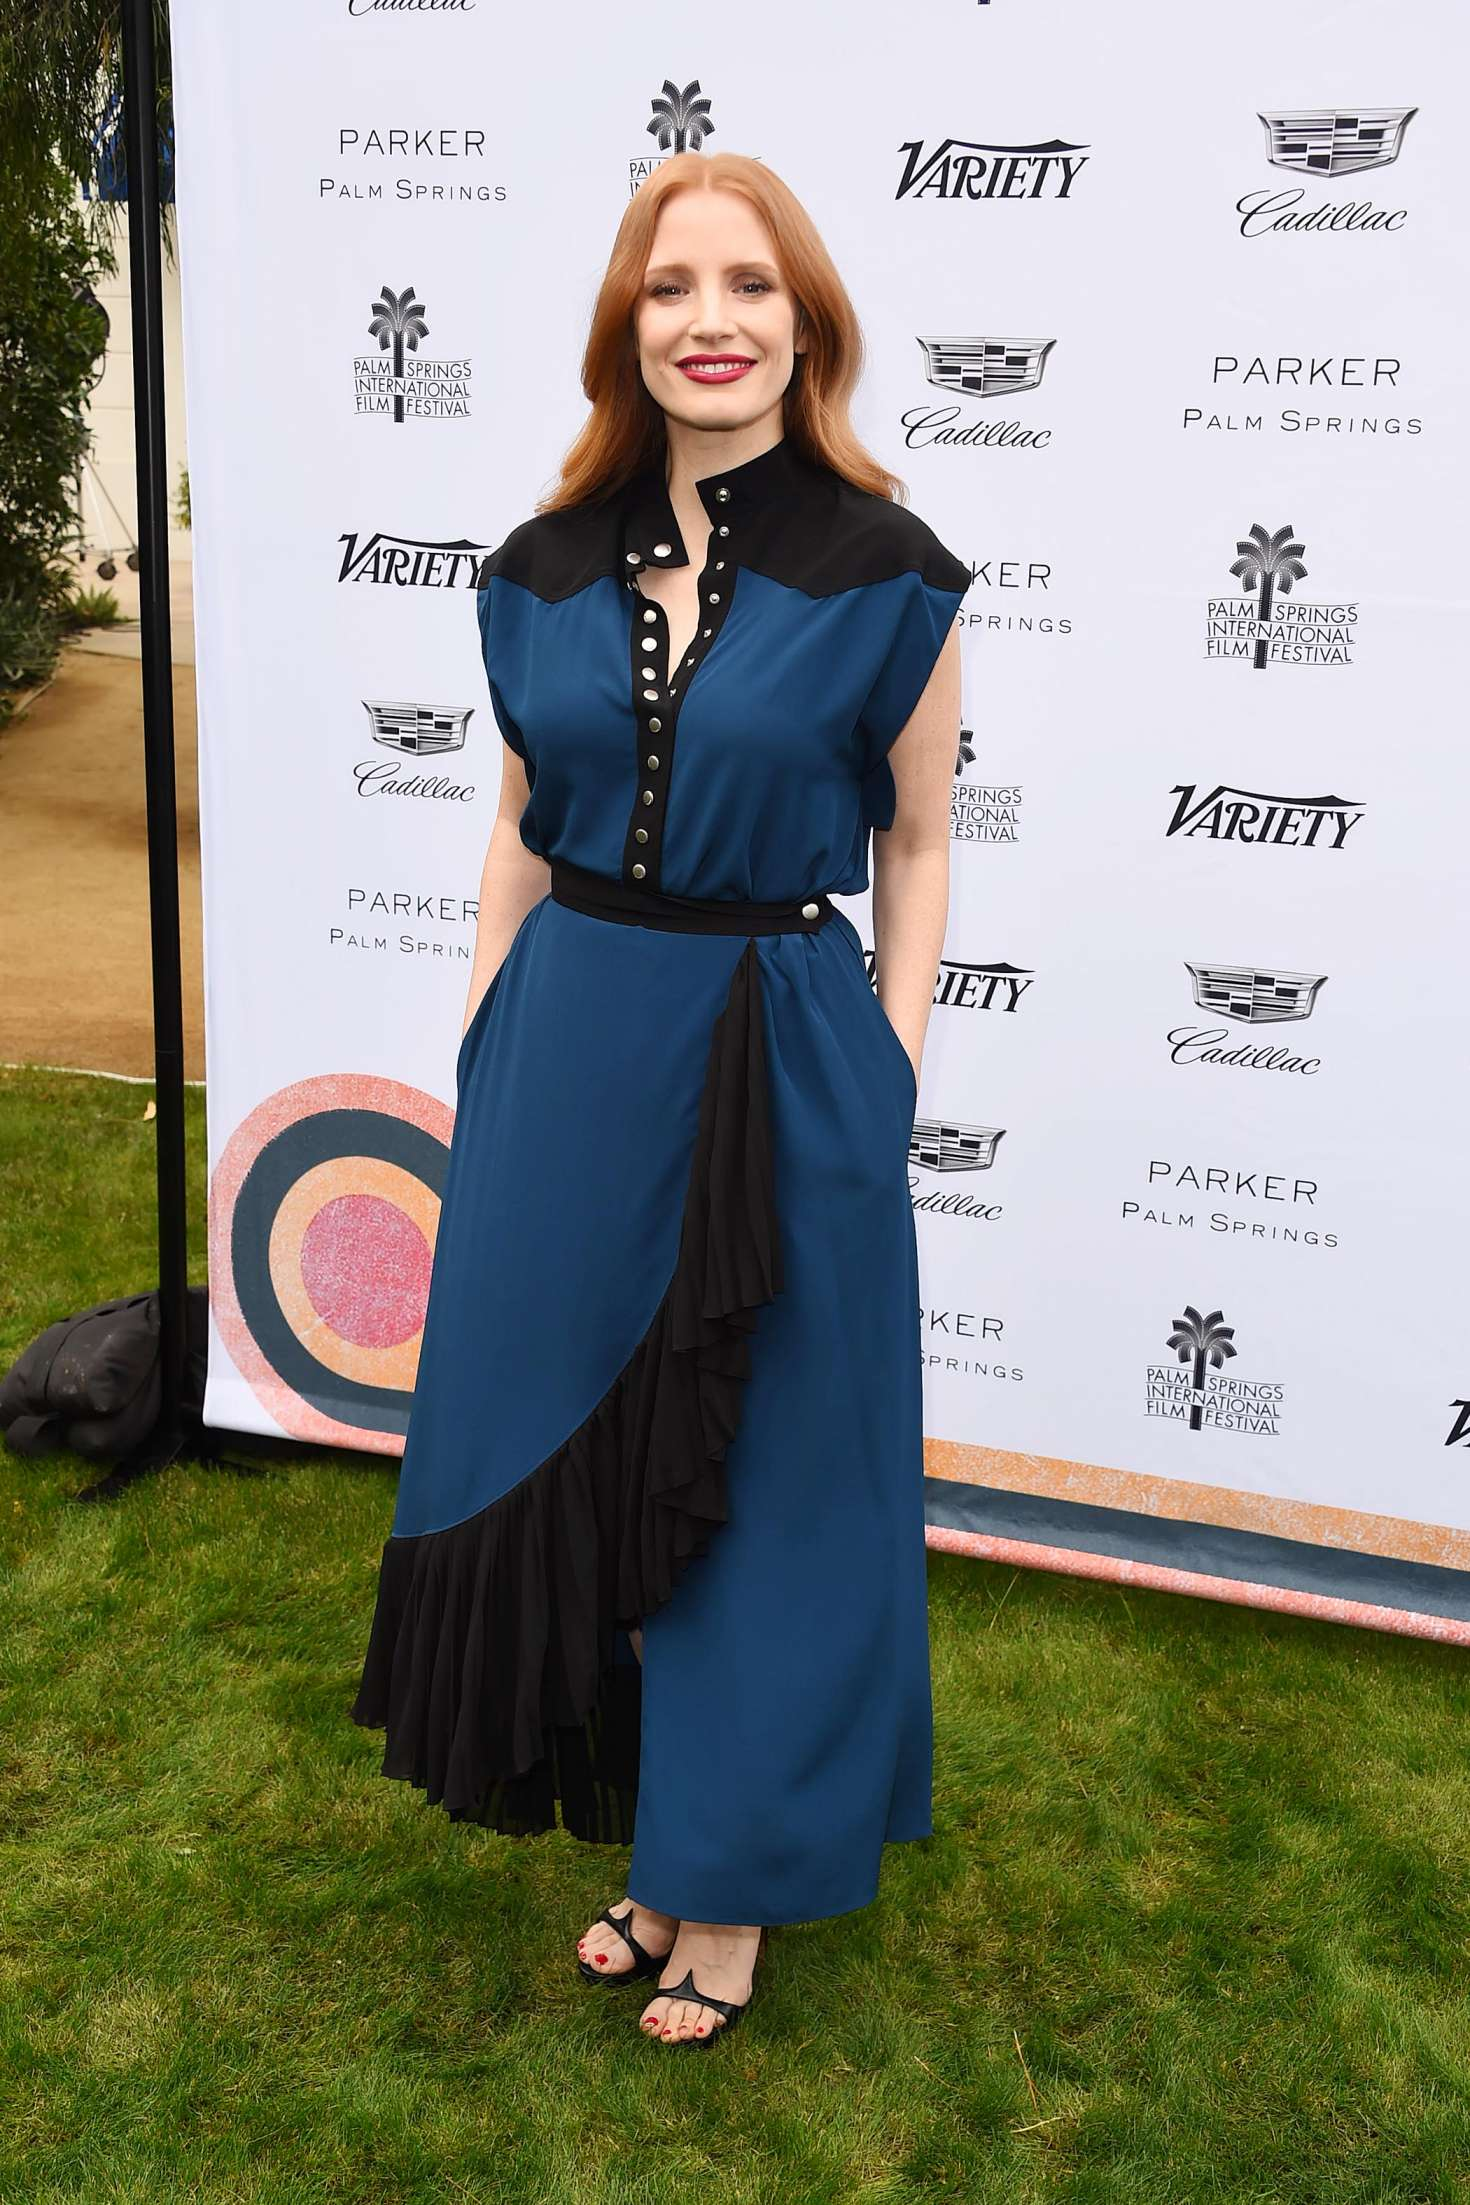 http://www.gotceleb.com/wp-content/uploads/photos/jessica-chastain/variety-s-creative-impact-awards-and-10-directors-to-watch-palm-springs/Jessica-Chastain:-Varietys-Creative-Impact-Awards-and-10-Directors-To-Watch-Palm-Springs--08.jpg